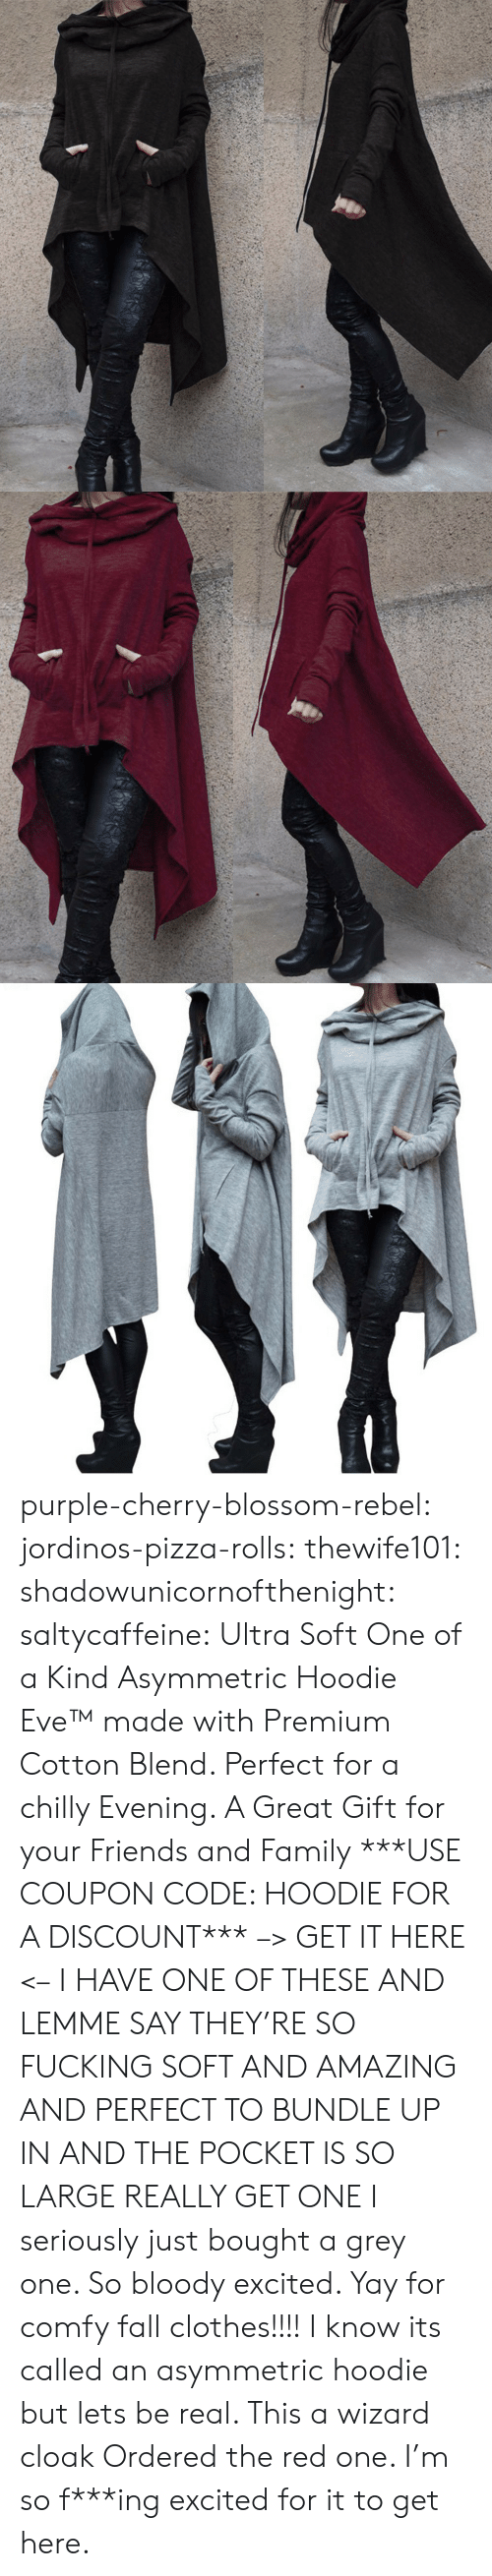 Clothes, Fall, and Family: purple-cherry-blossom-rebel:  jordinos-pizza-rolls:  thewife101:  shadowunicornofthenight:  saltycaffeine:  Ultra Soft One of a Kind Asymmetric Hoodie Eve™made with Premium Cotton Blend. Perfect for a chilly Evening. A Great Gift for your Friends and Family ***USE COUPON CODE: HOODIE FOR A DISCOUNT*** –> GET IT HERE <–   I HAVE ONE OF THESE AND LEMME SAY THEY'RE SO FUCKING SOFT AND AMAZING AND PERFECT TO BUNDLE UP IN AND THE POCKET IS SO LARGE REALLY GET ONE   I seriously just bought a grey one. So bloody excited. Yay for comfy fall clothes!!!!    I know its called an asymmetric hoodie but lets be real. This a wizard cloak   Ordered the red one. I'm so f***ing excited for it to get here.